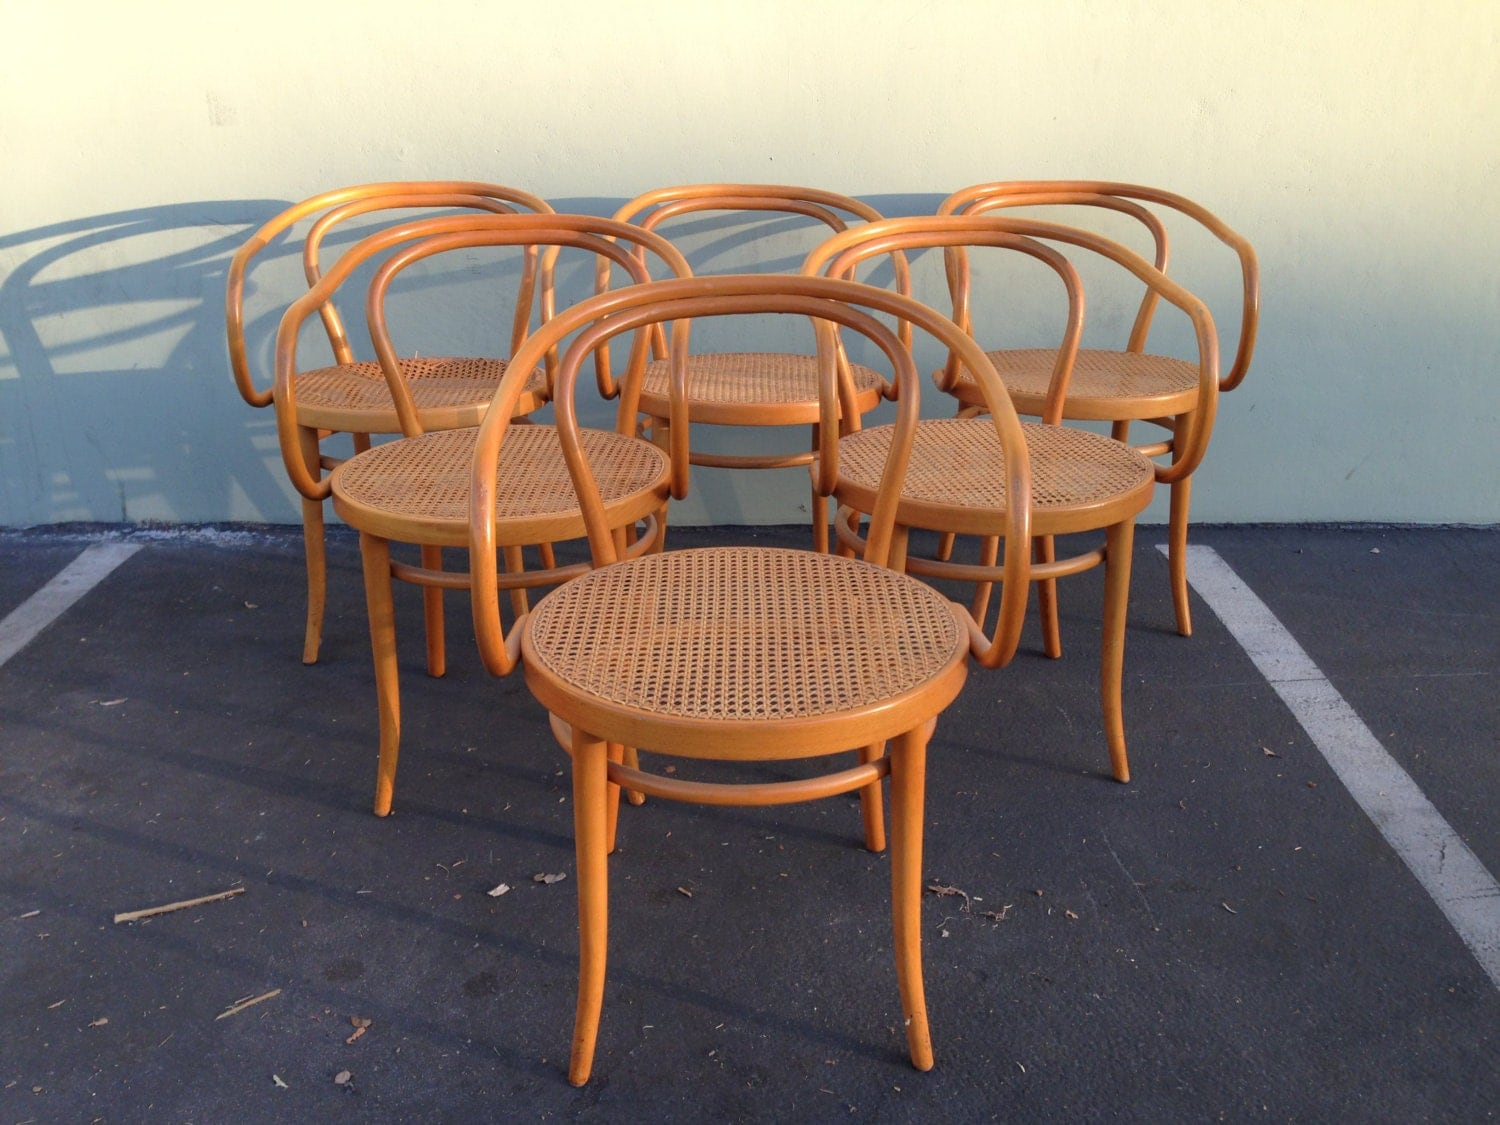 Bent Wood Chairs 6 Stendig Thonet Bentwood Chairs No B9 Dining Chair Wood Cane